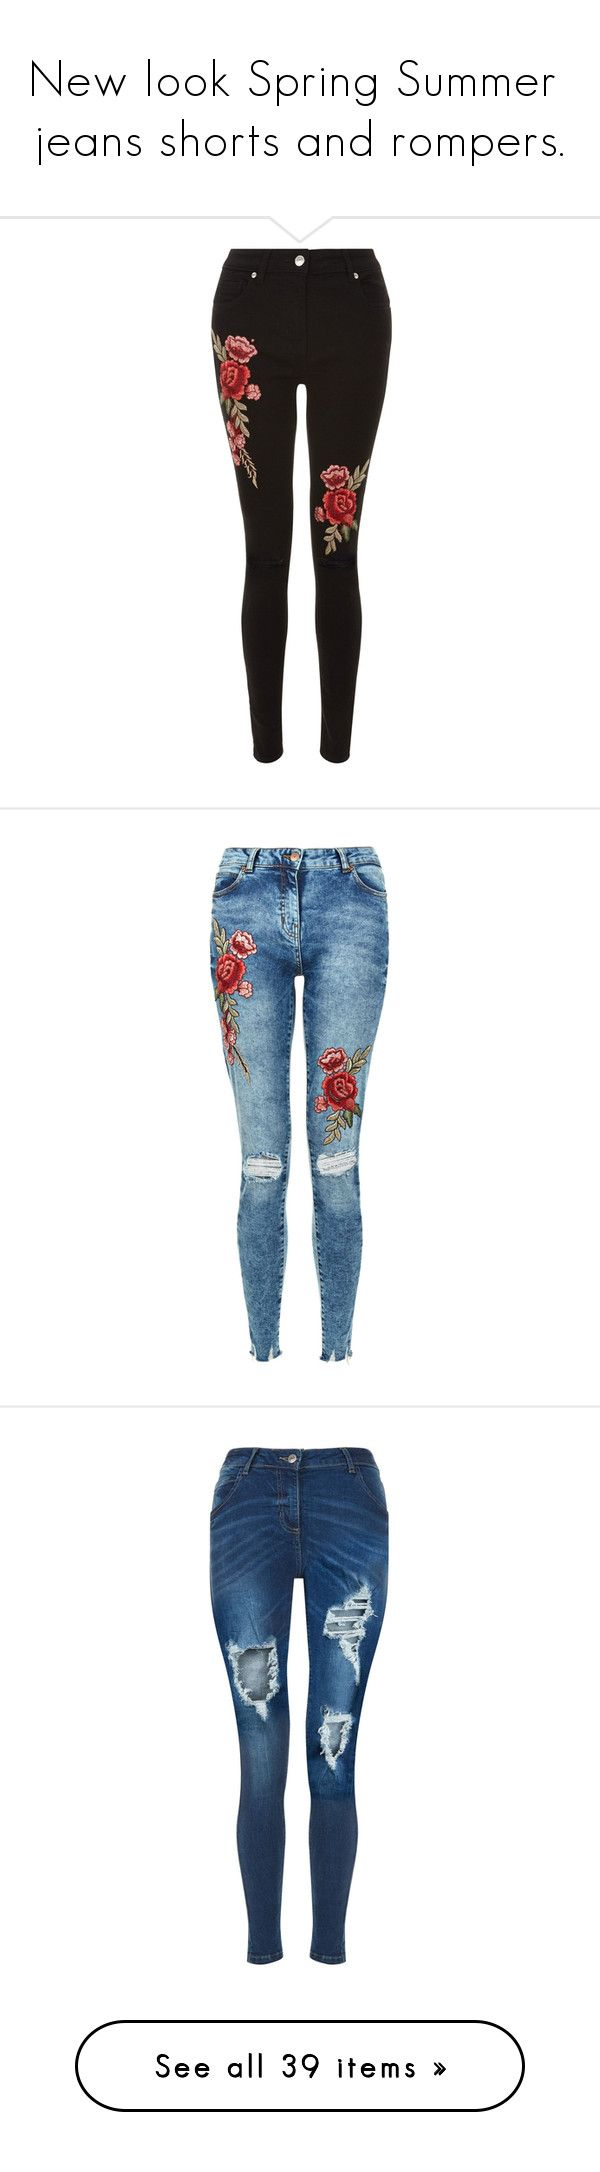 """New look Spring Summer jeans shorts and rompers."" by crazygirlandproud ❤ liked on Polyvore featuring jeans, destroyed skinny jeans, ripped jeans, skinny fit jeans, torn jeans, destruction jeans, denim skinny jeans, ripped blue jeans, skinny jeans and destructed jeans"